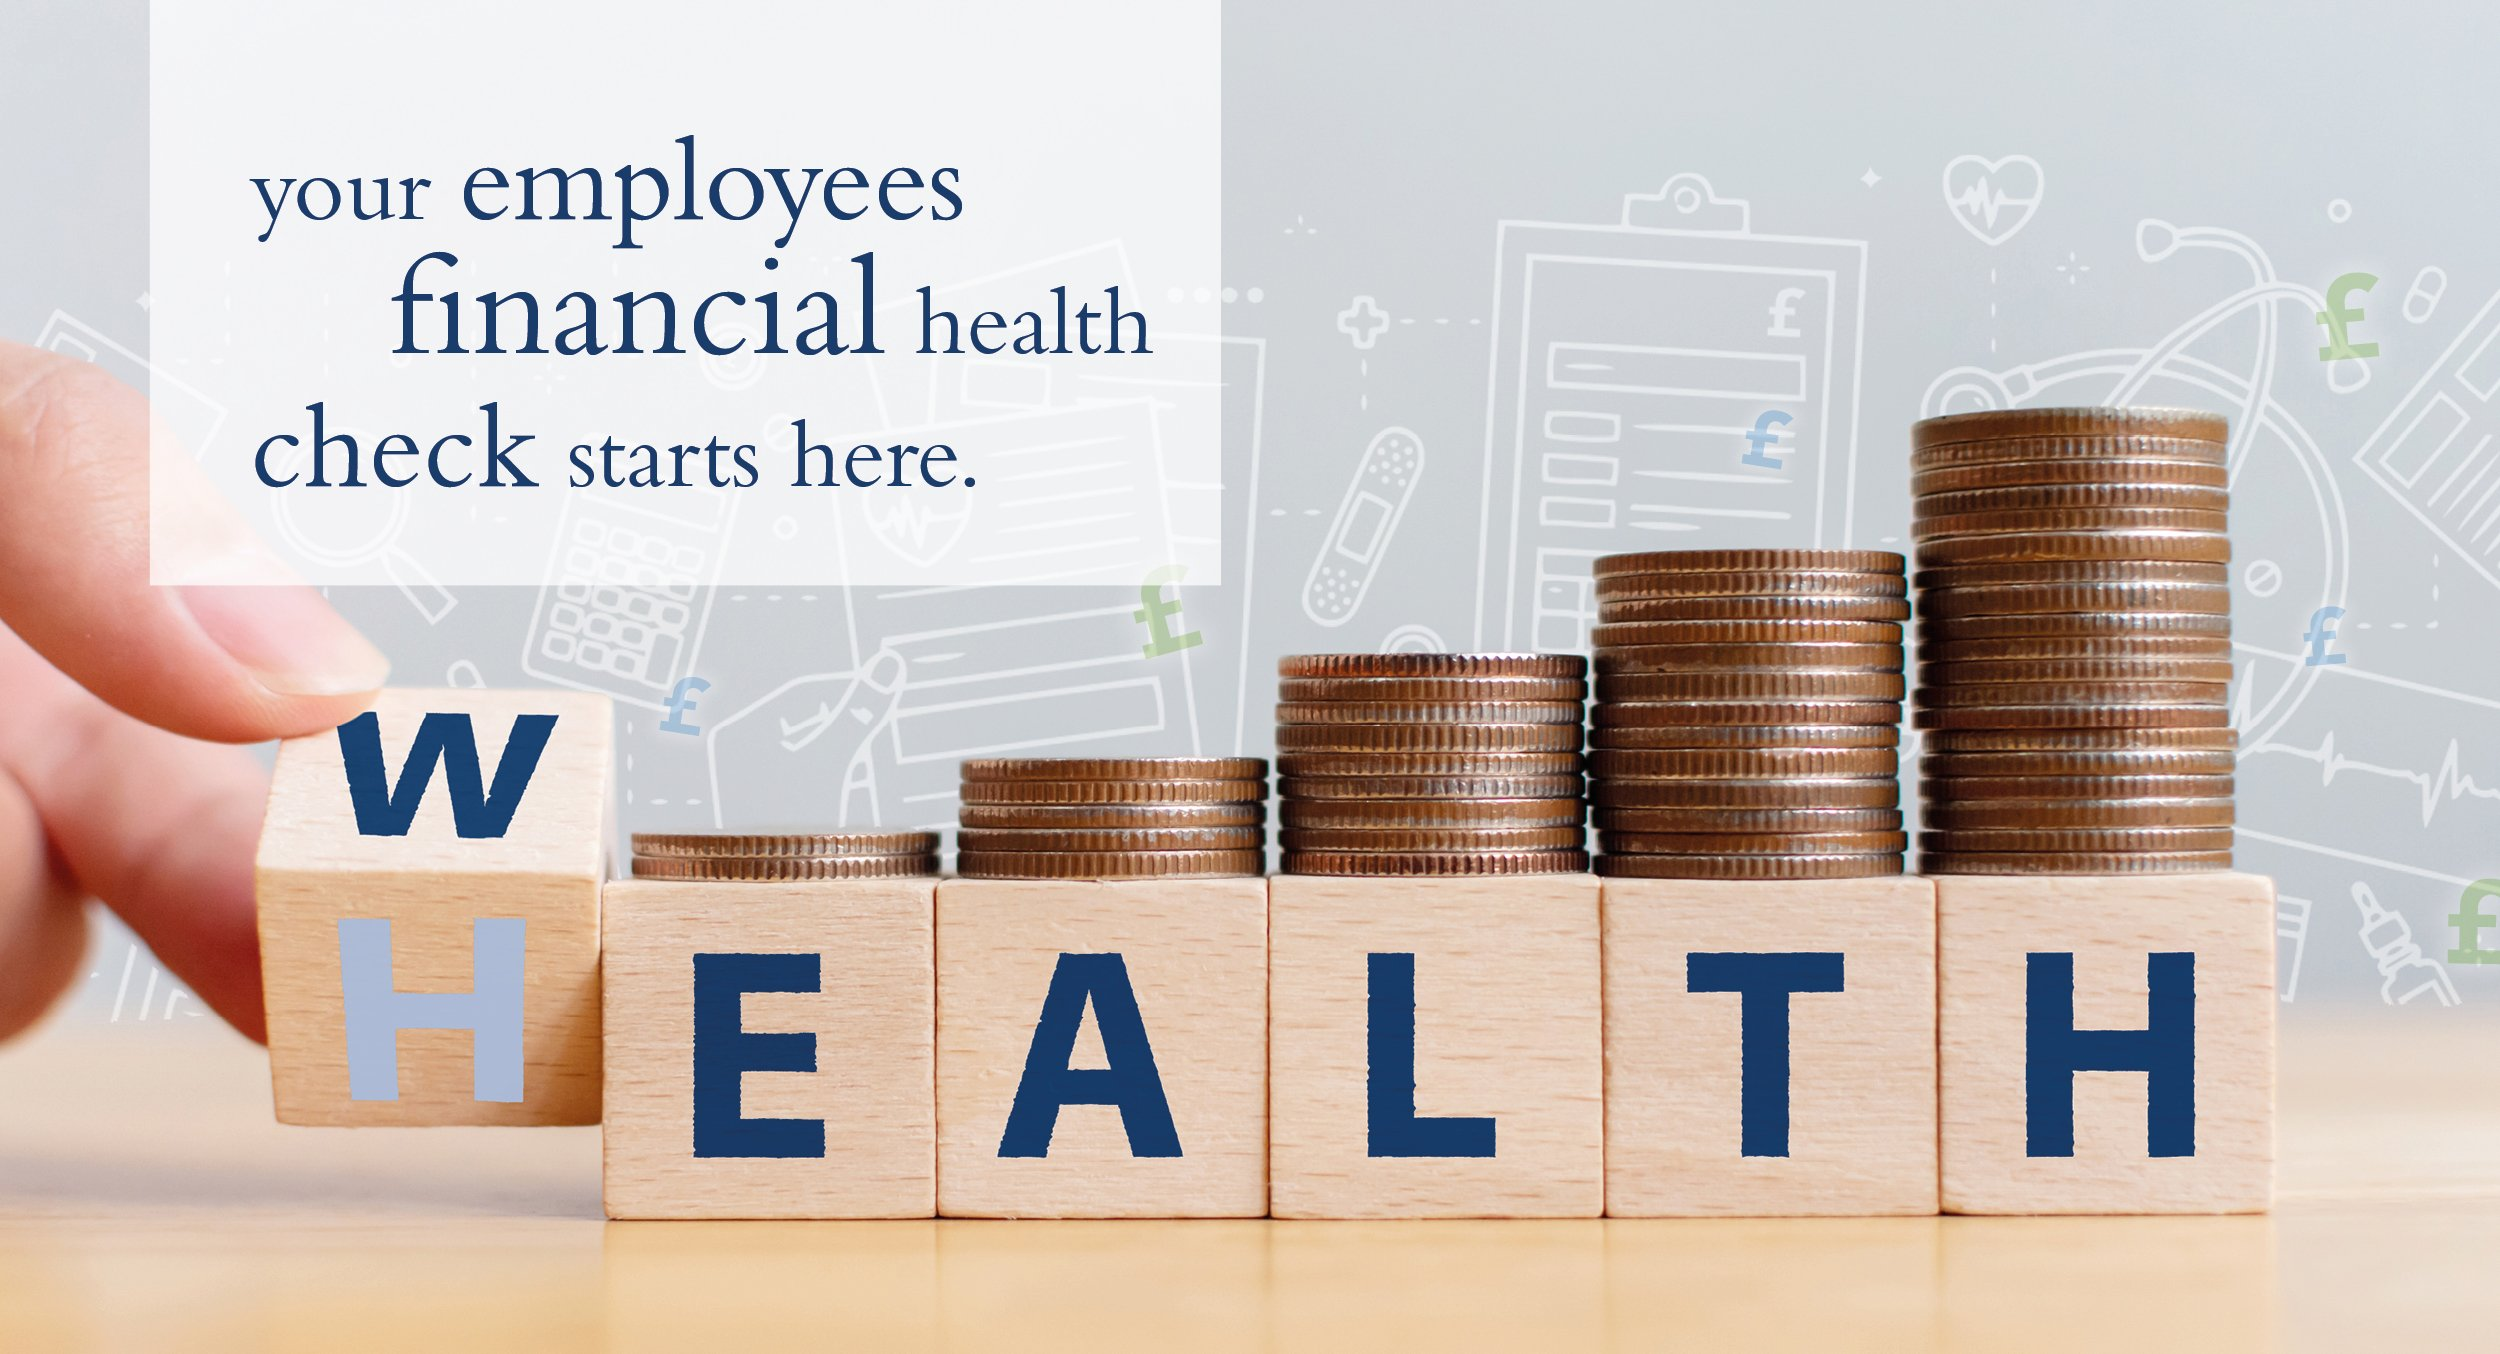 WEALTH at work launch the Financial Healthcheck to help employees achieve their financial goals.